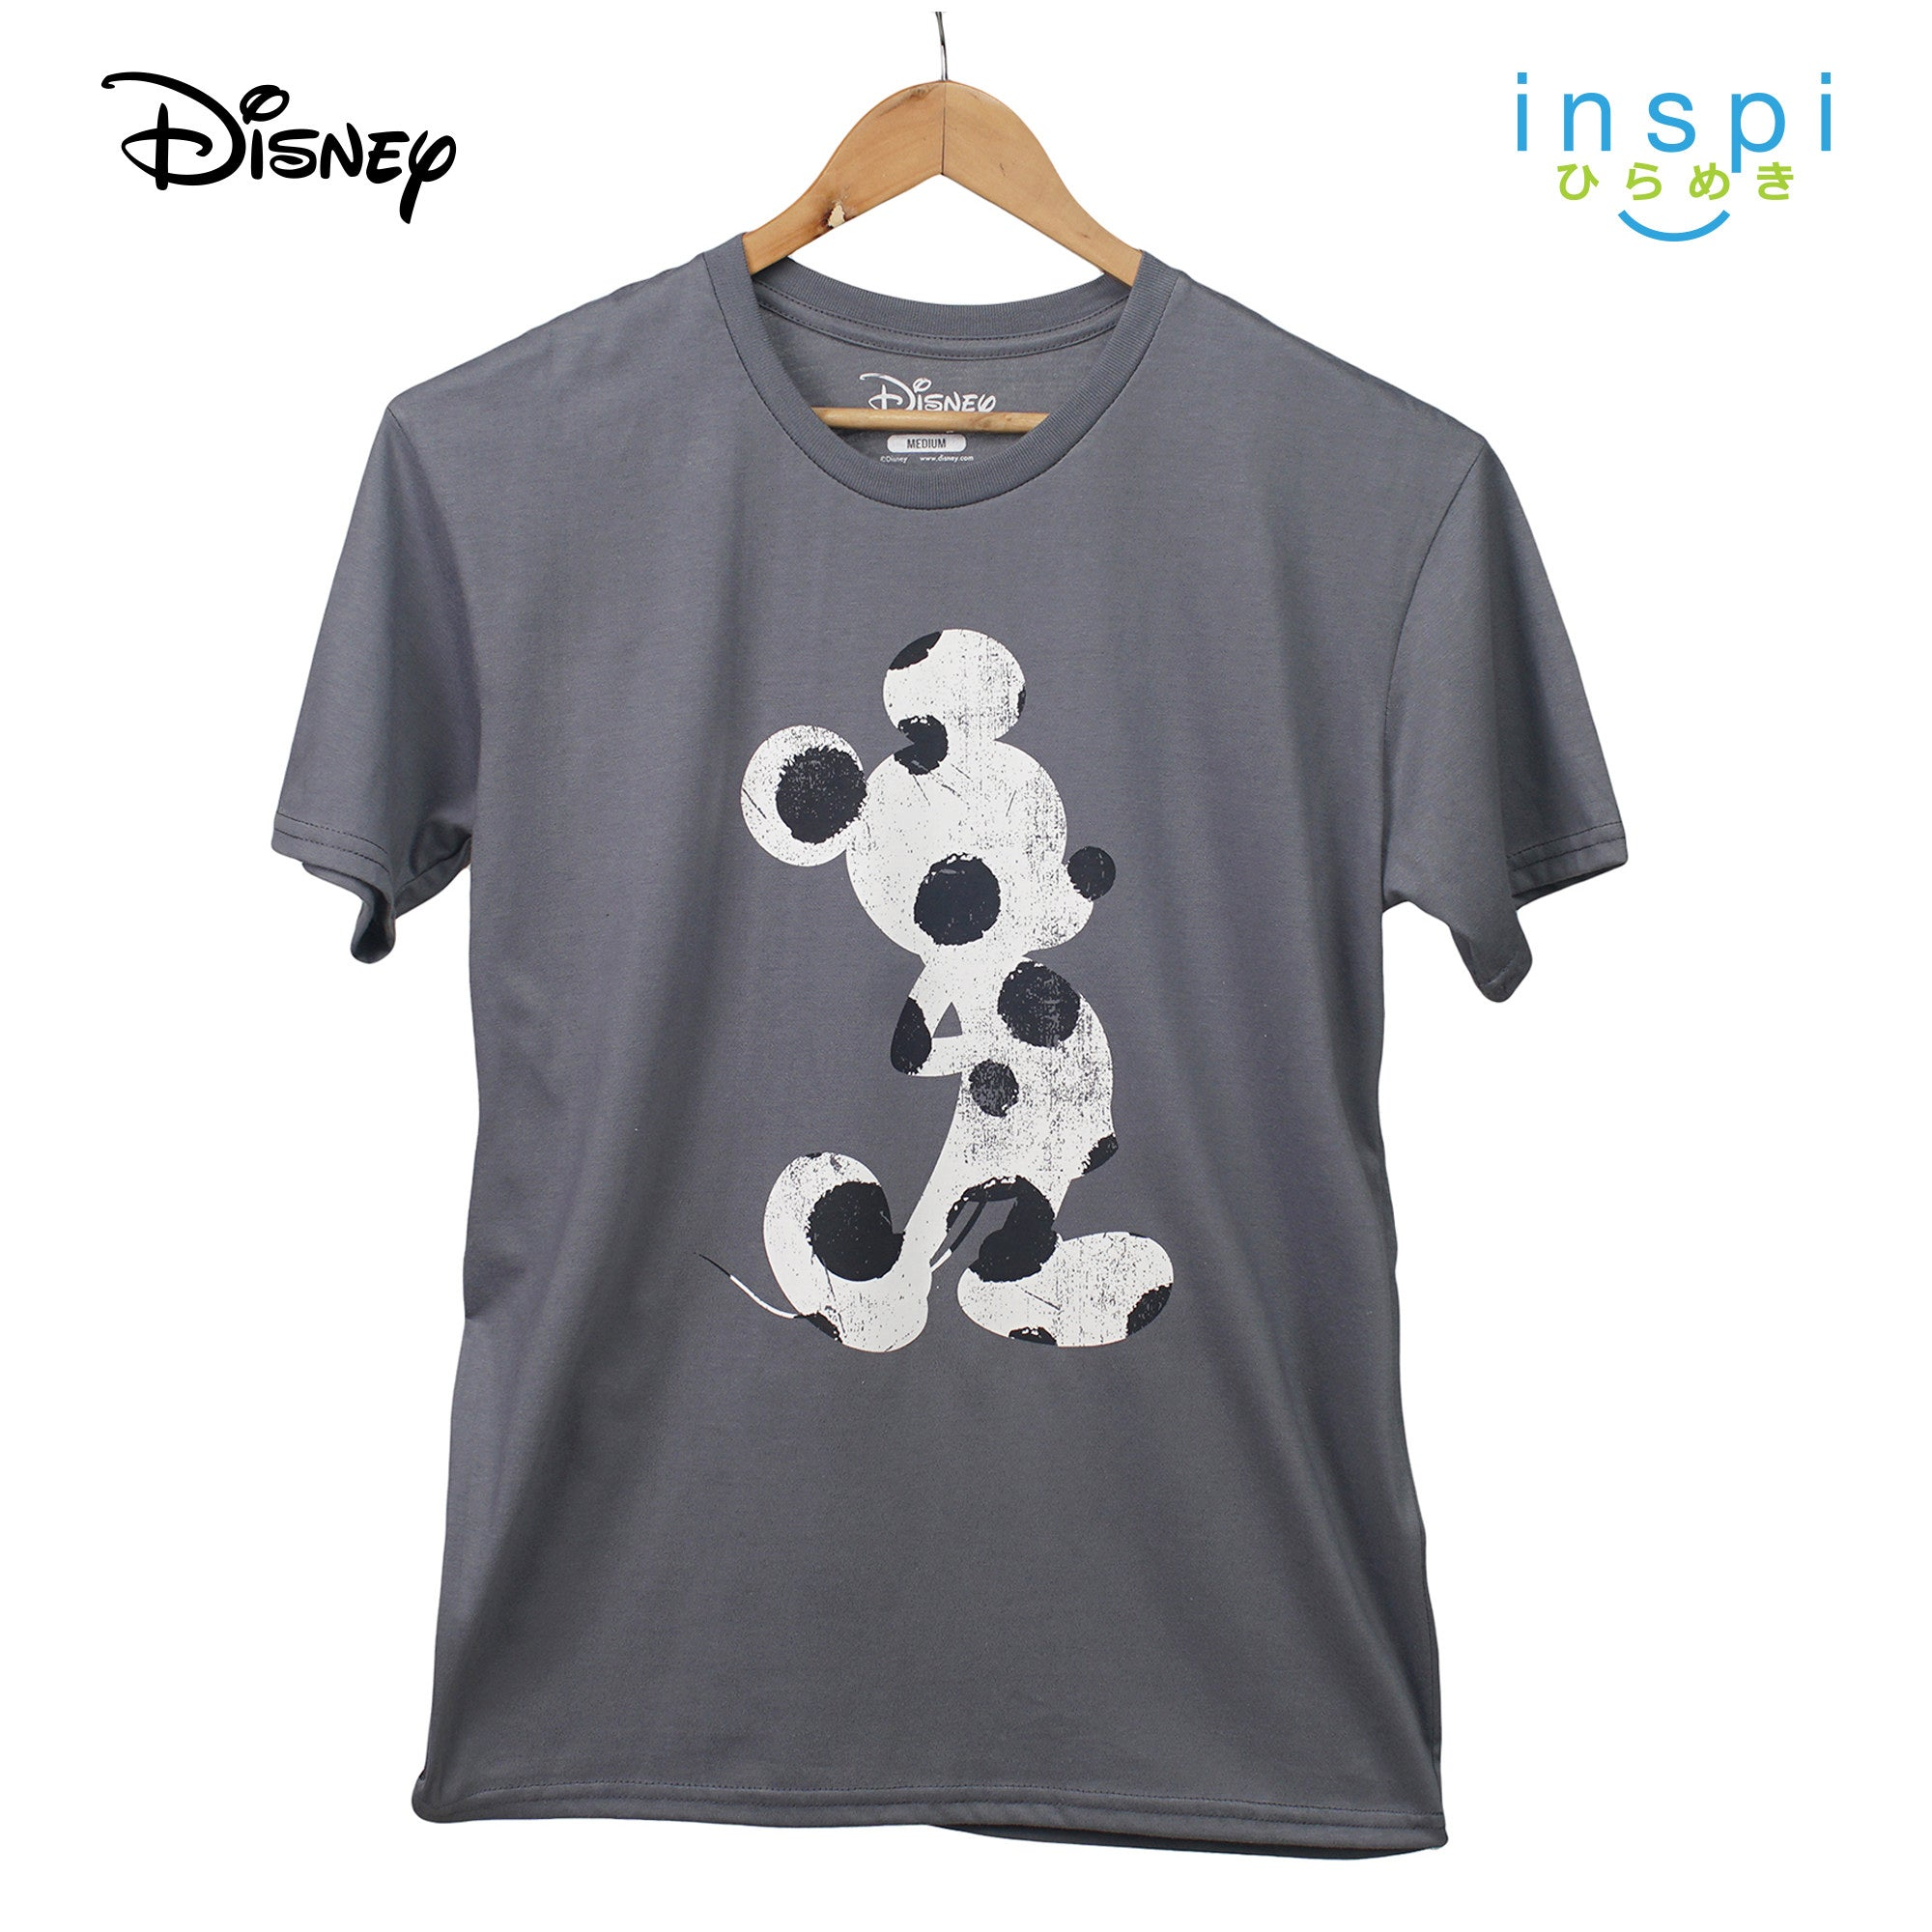 Disney Mickey Mouse Polkadot Silhouette Graphic Tshirt in Gray For Men Inspi Shirt